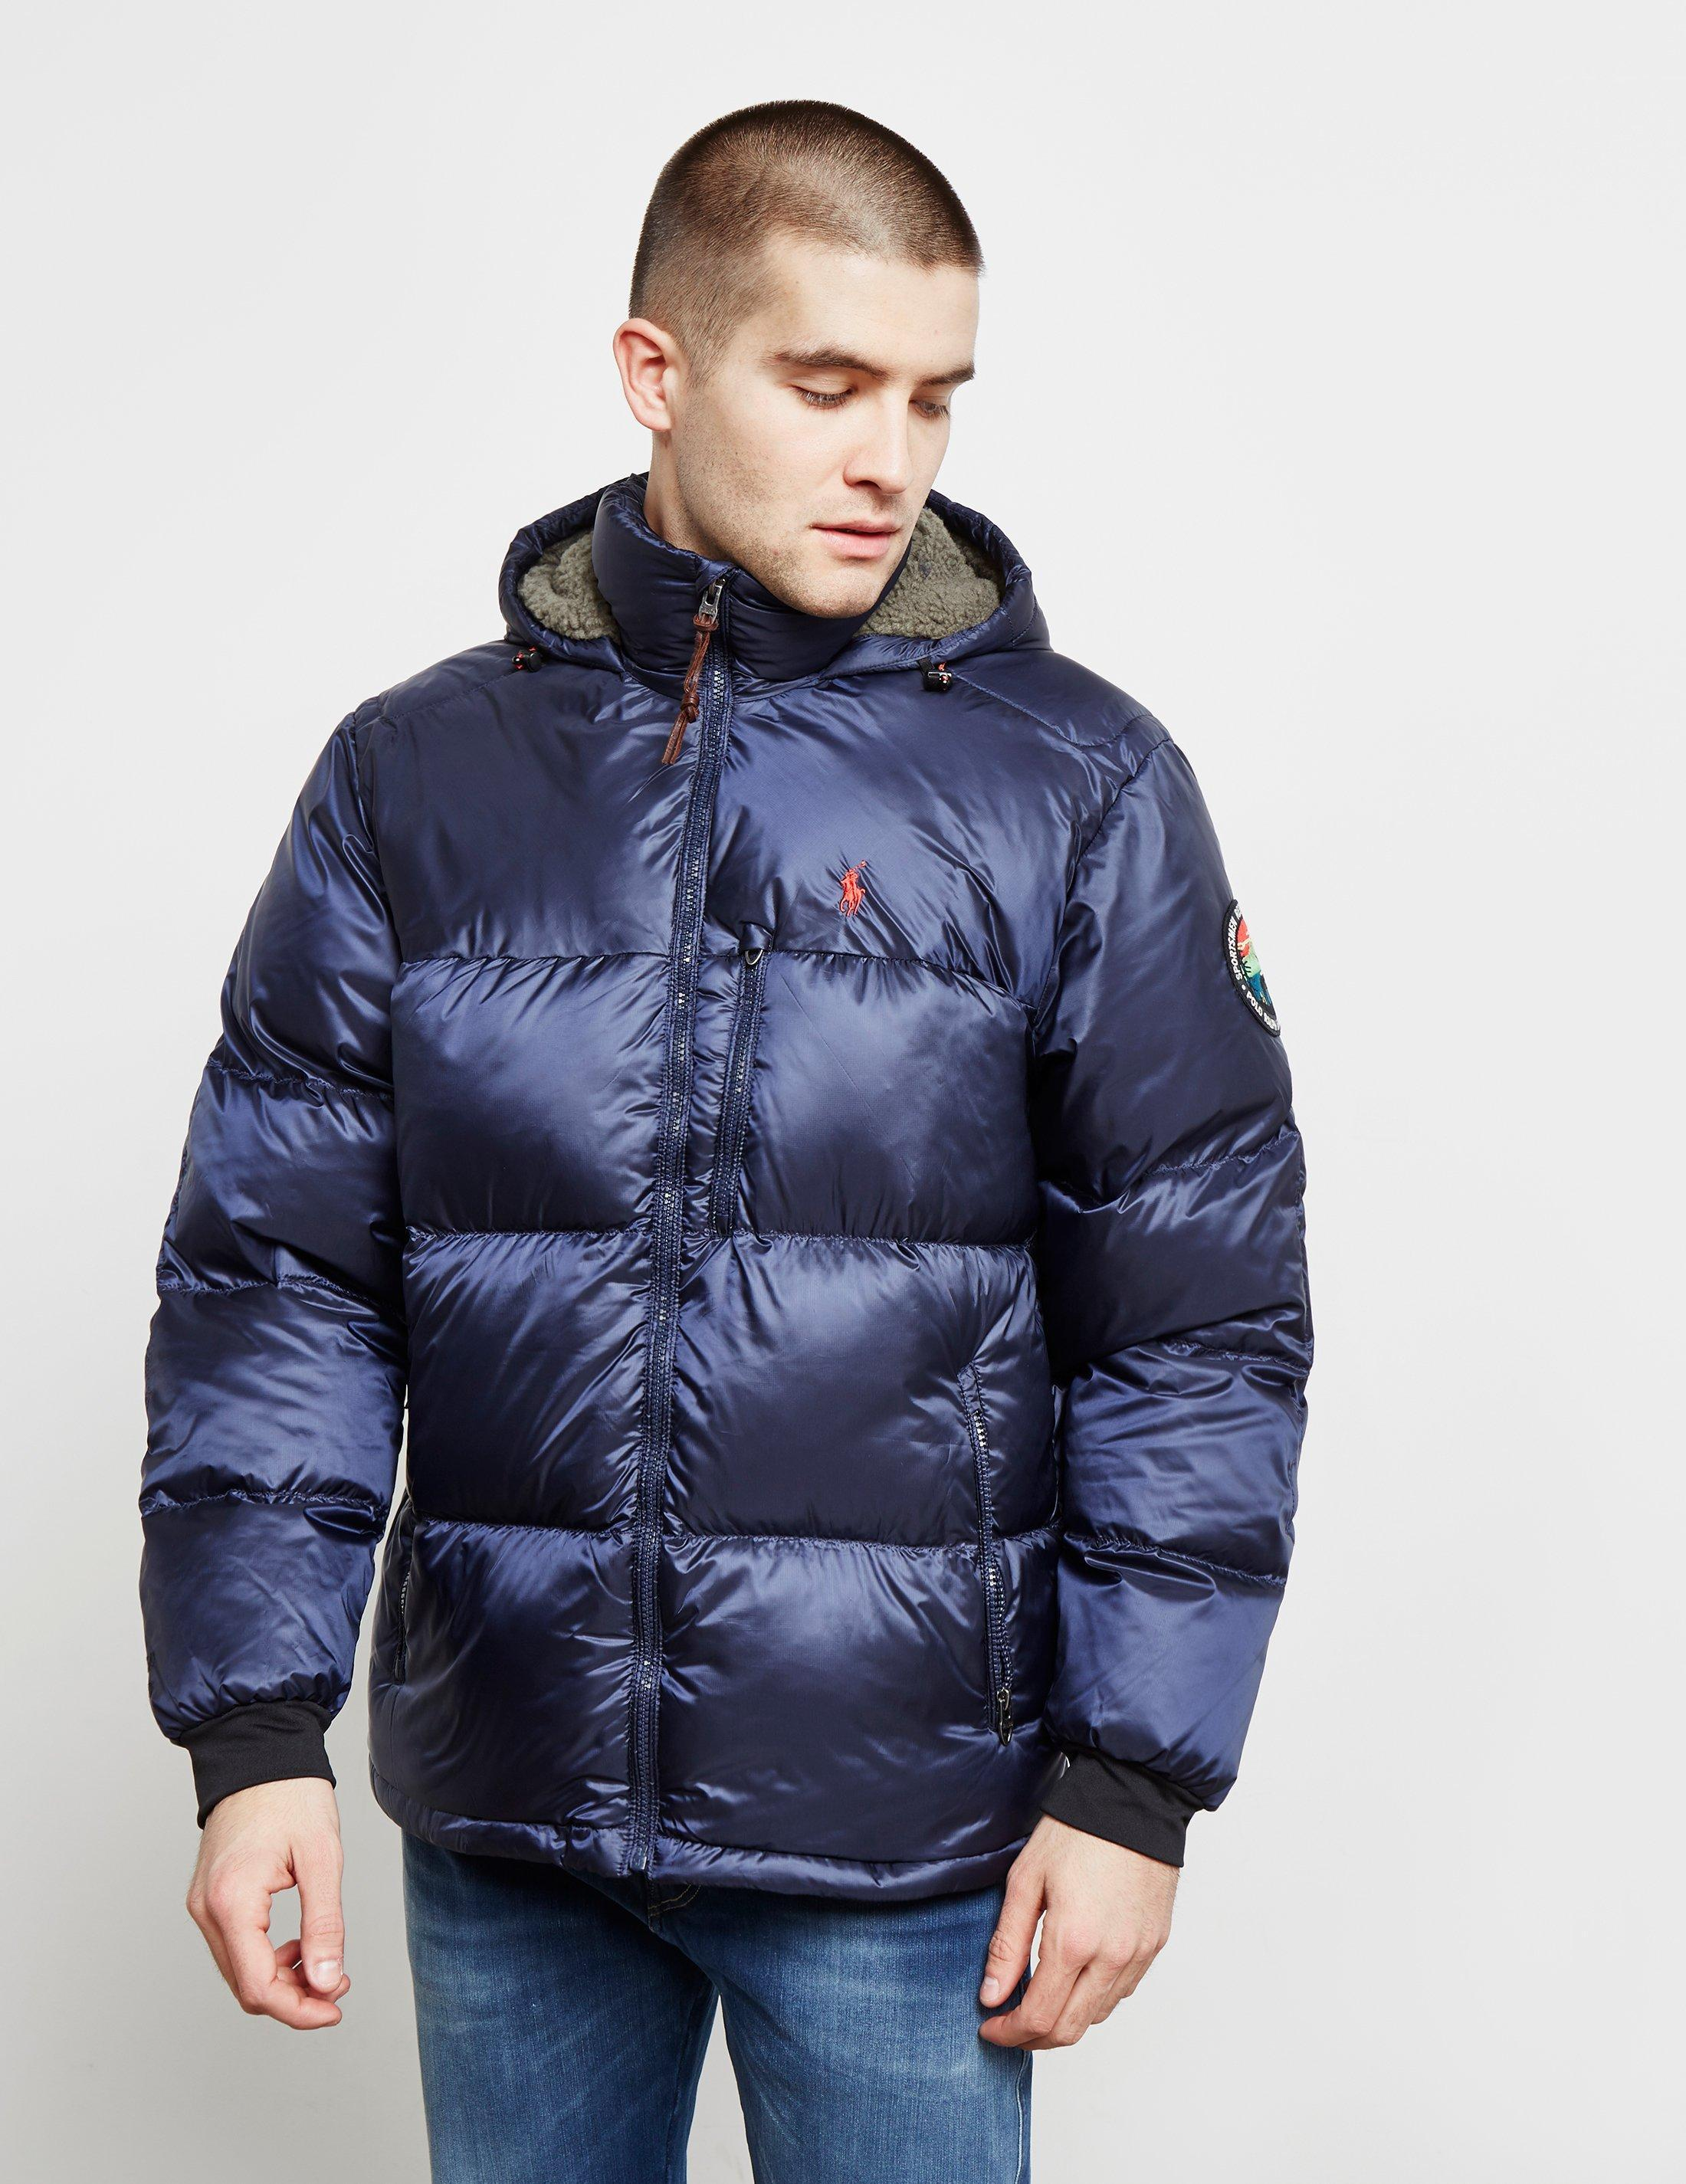 57f6e99c5f518 Lyst - Polo Ralph Lauren Jackson Down Padded Jacket Navy Blue in ...